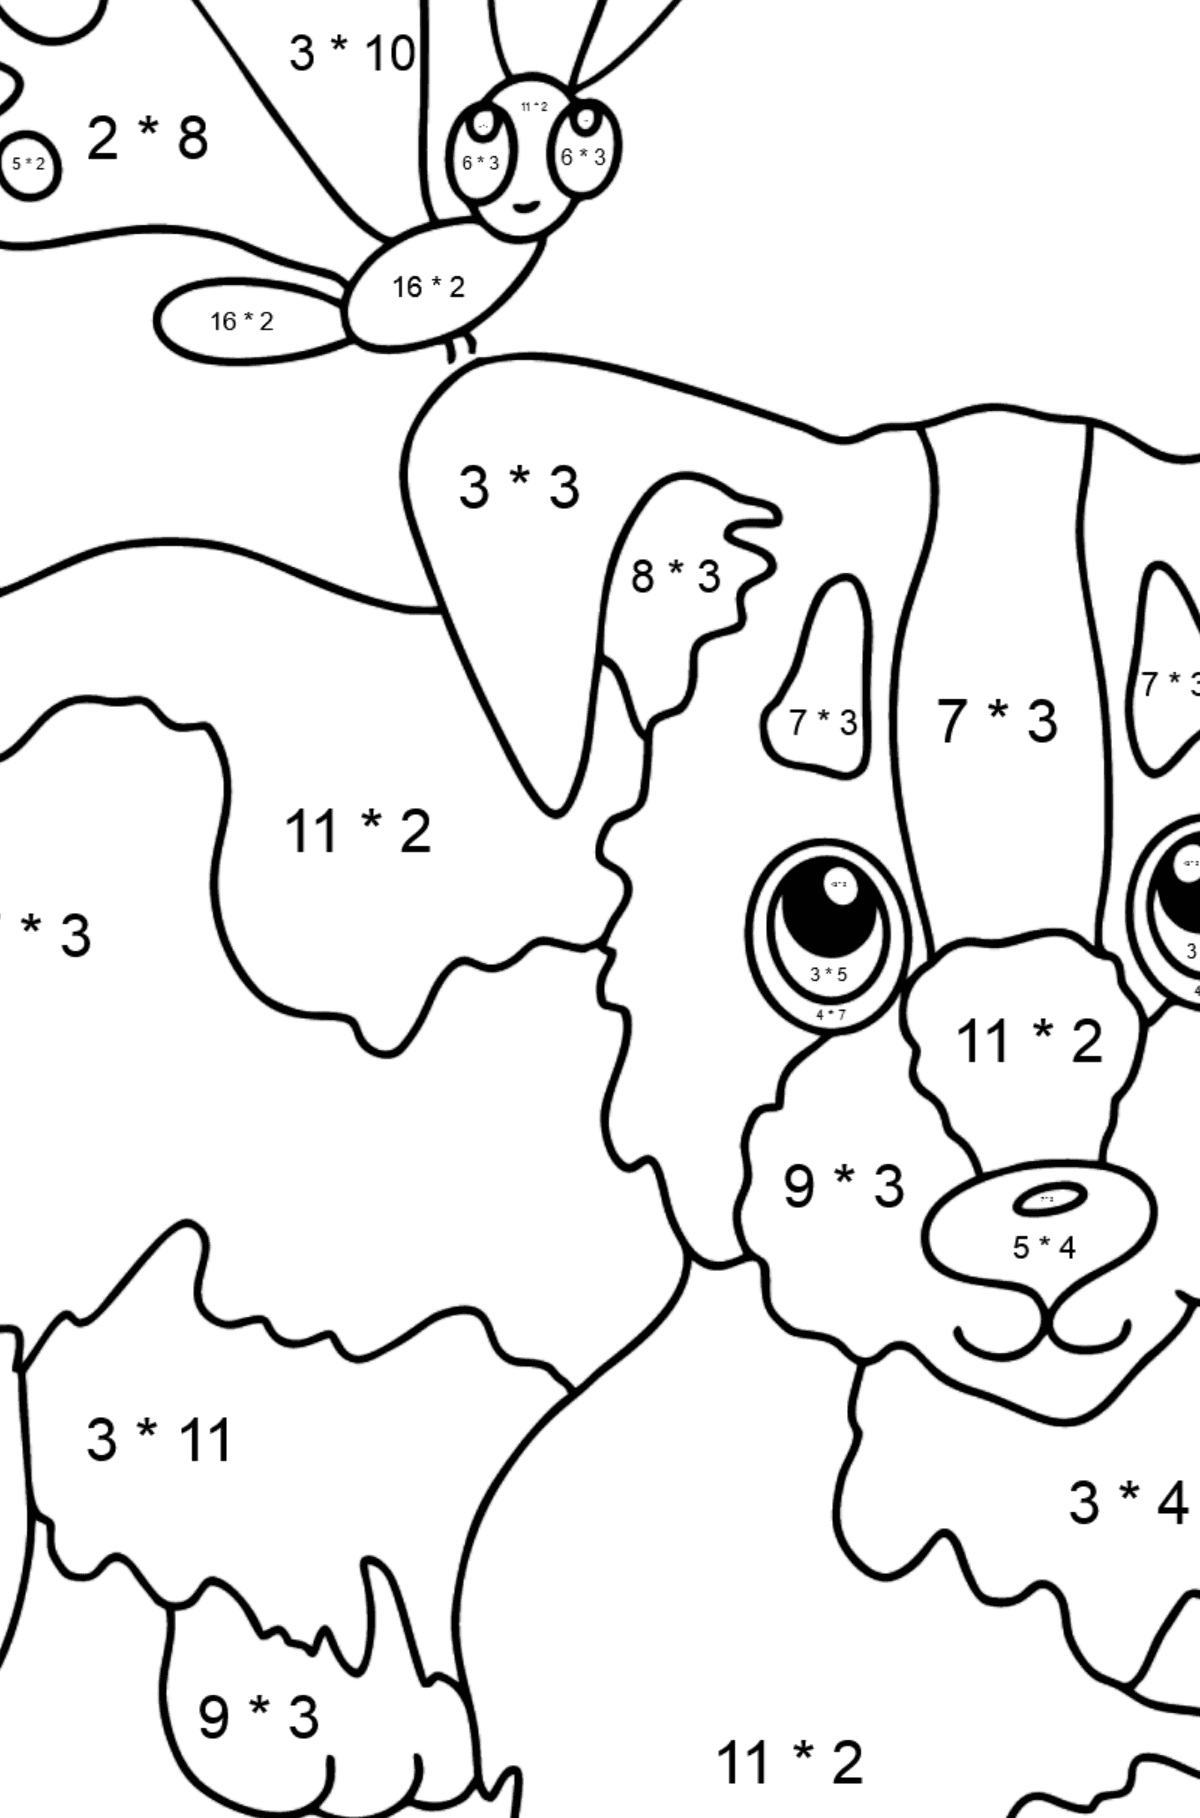 Coloring Page - A Dog is Playing with a Butterfly - Math Coloring - Multiplication for Kids